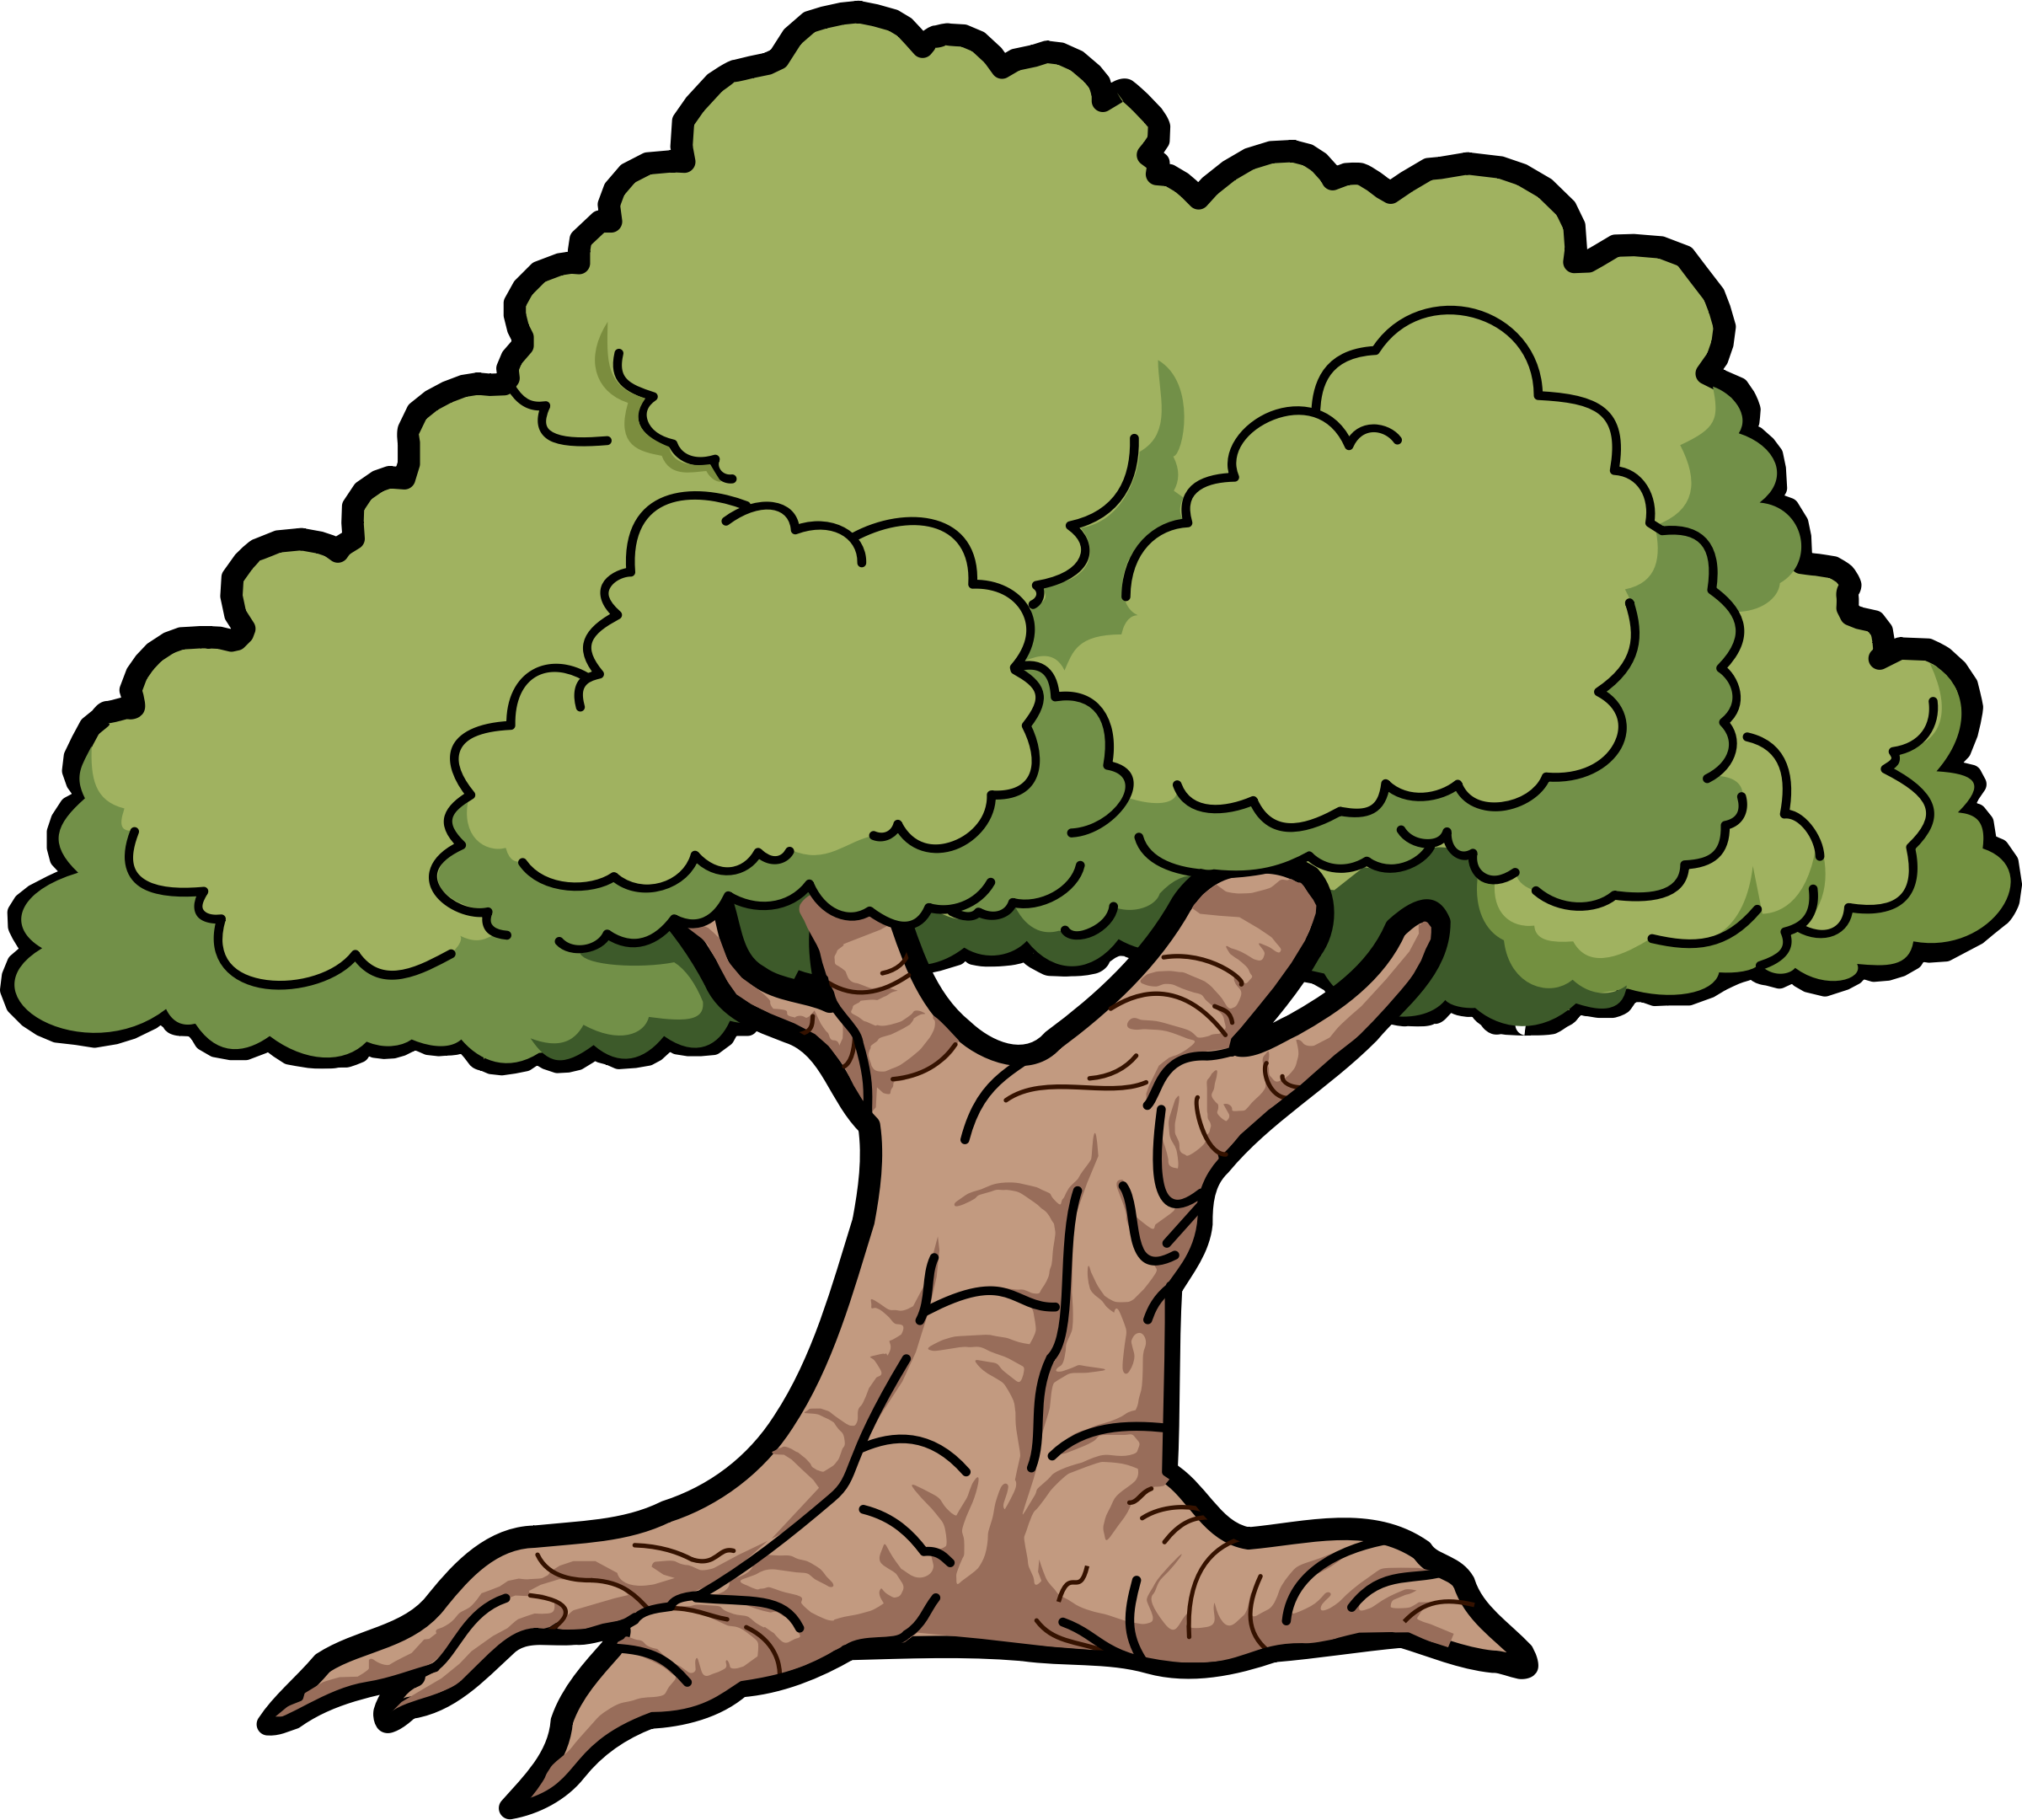 Clipart - tree graphic download